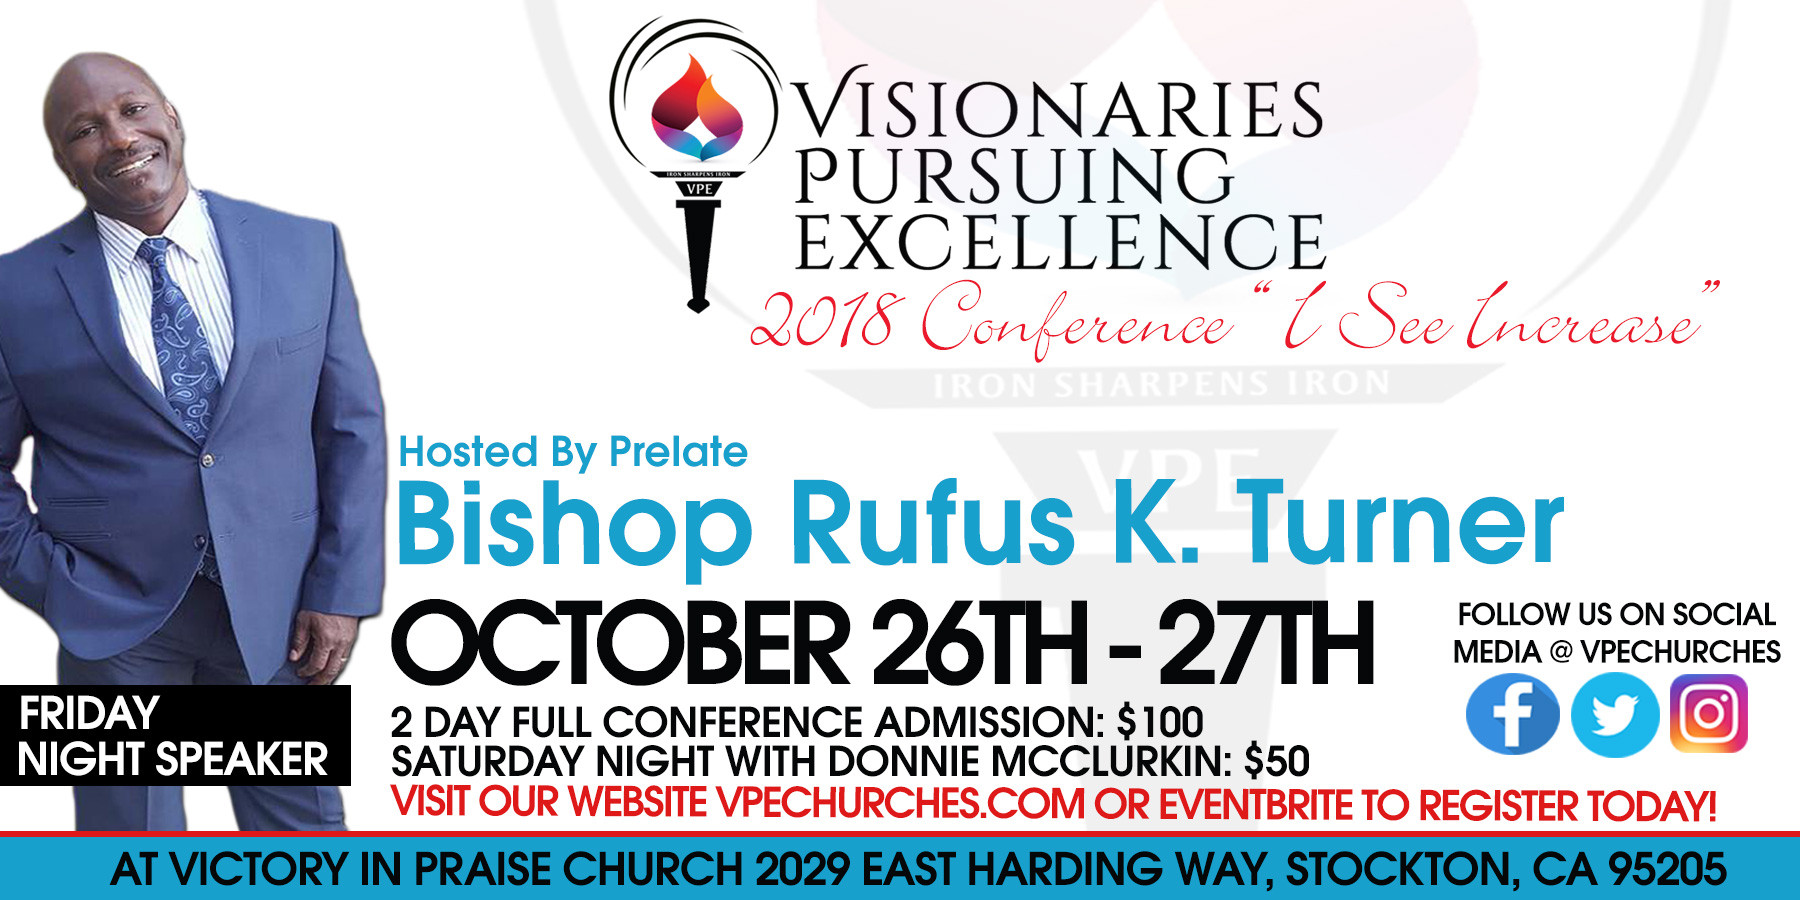 2018 Vision Conference